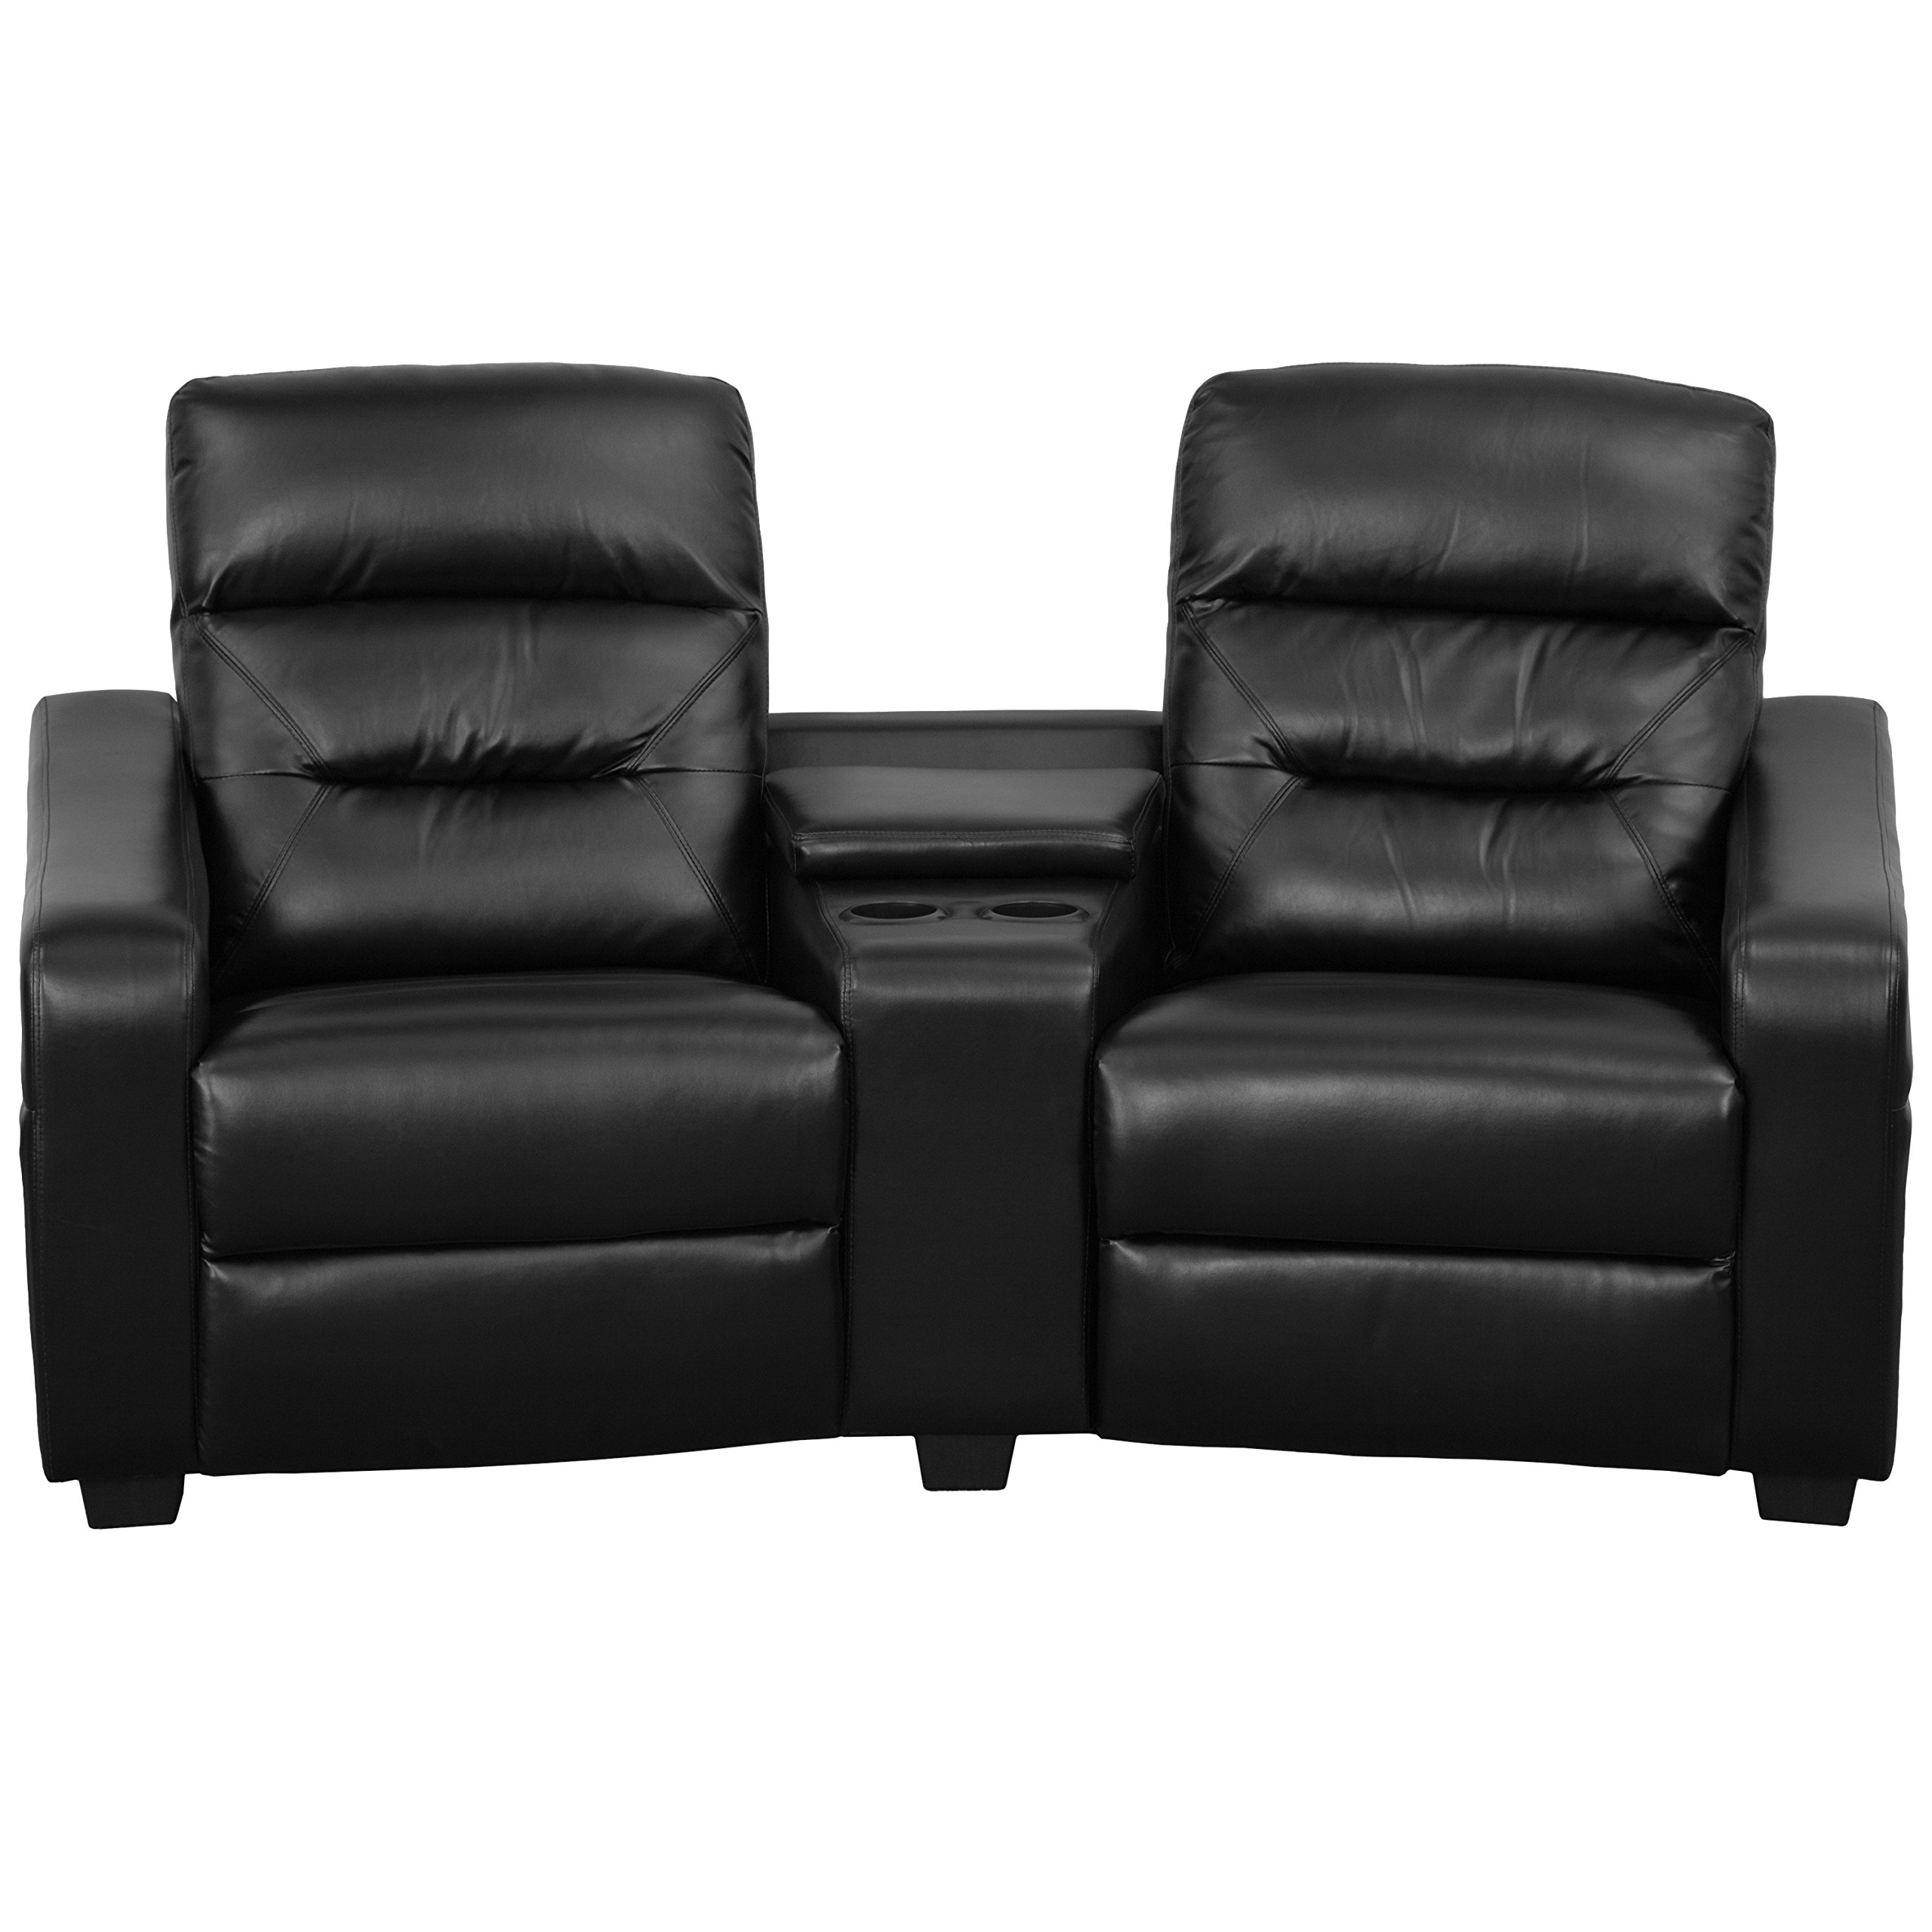 Flash Furniture Futura Series 2-Seat Reclining Black Leather Theater Seating Unit with Cup Holders by Flash Furniture